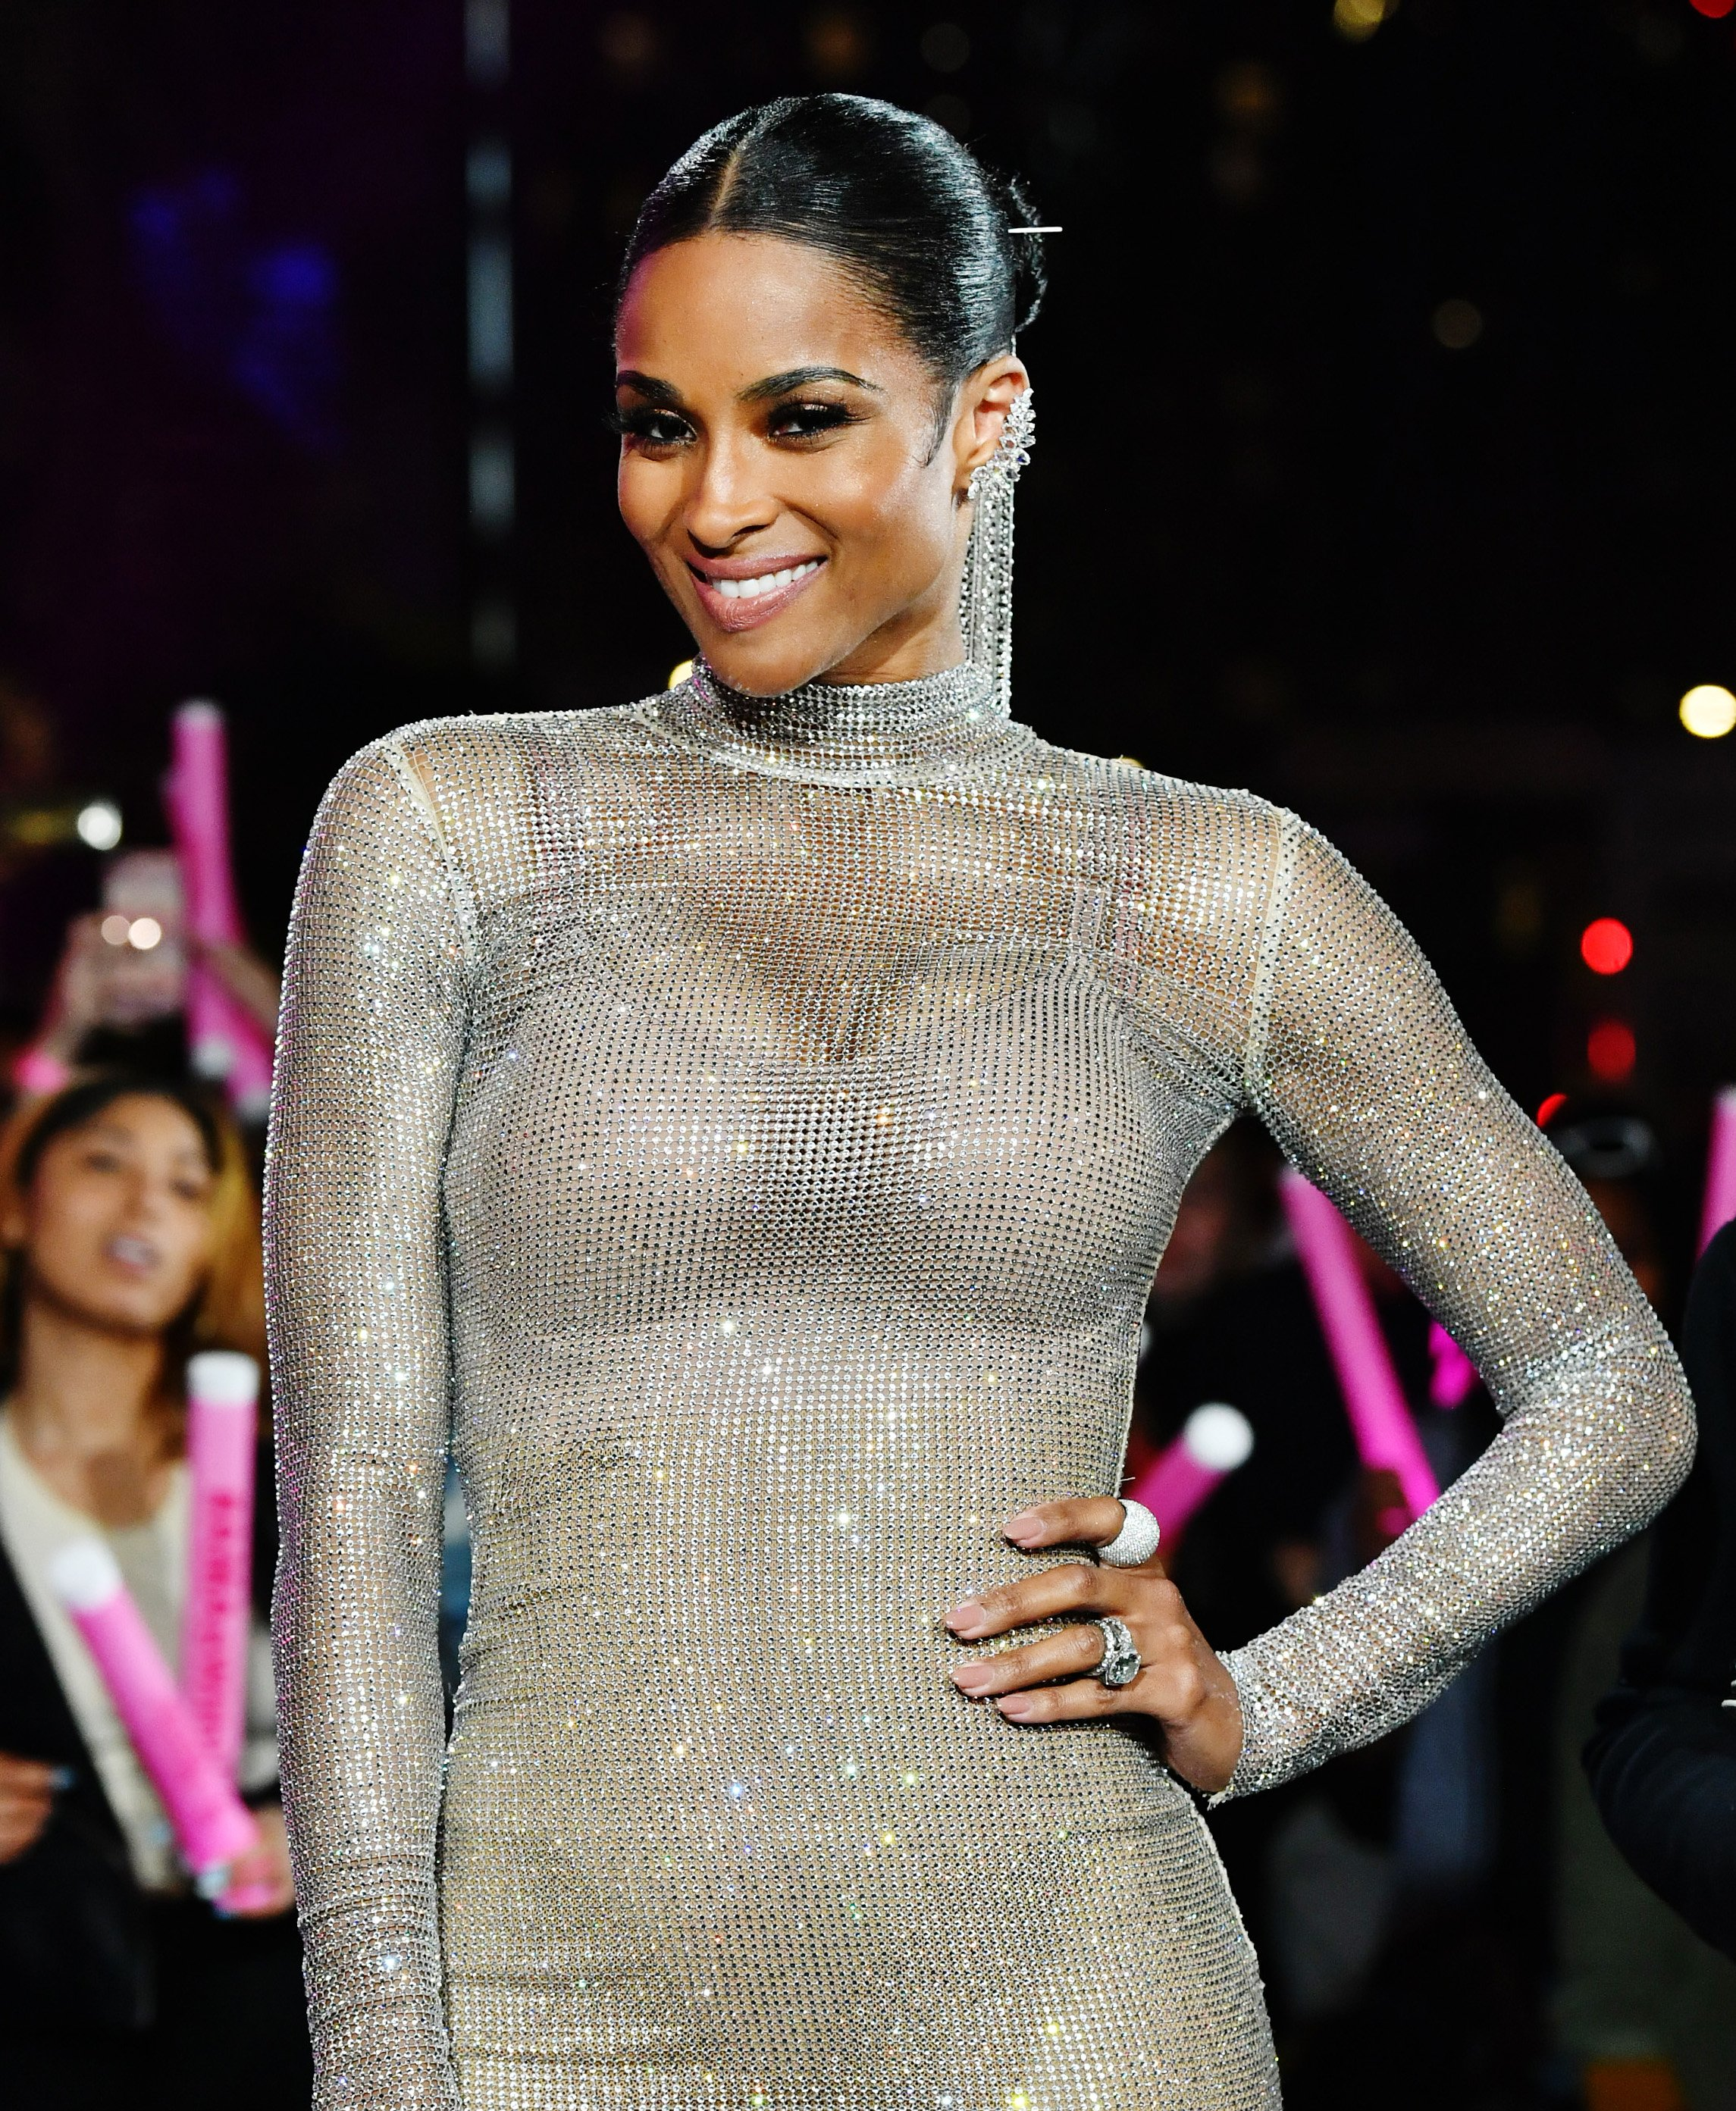 Ciara at the 2019 American Music Awards on November 24, 2019 in Los Angeles, California. | Source: Getty Images